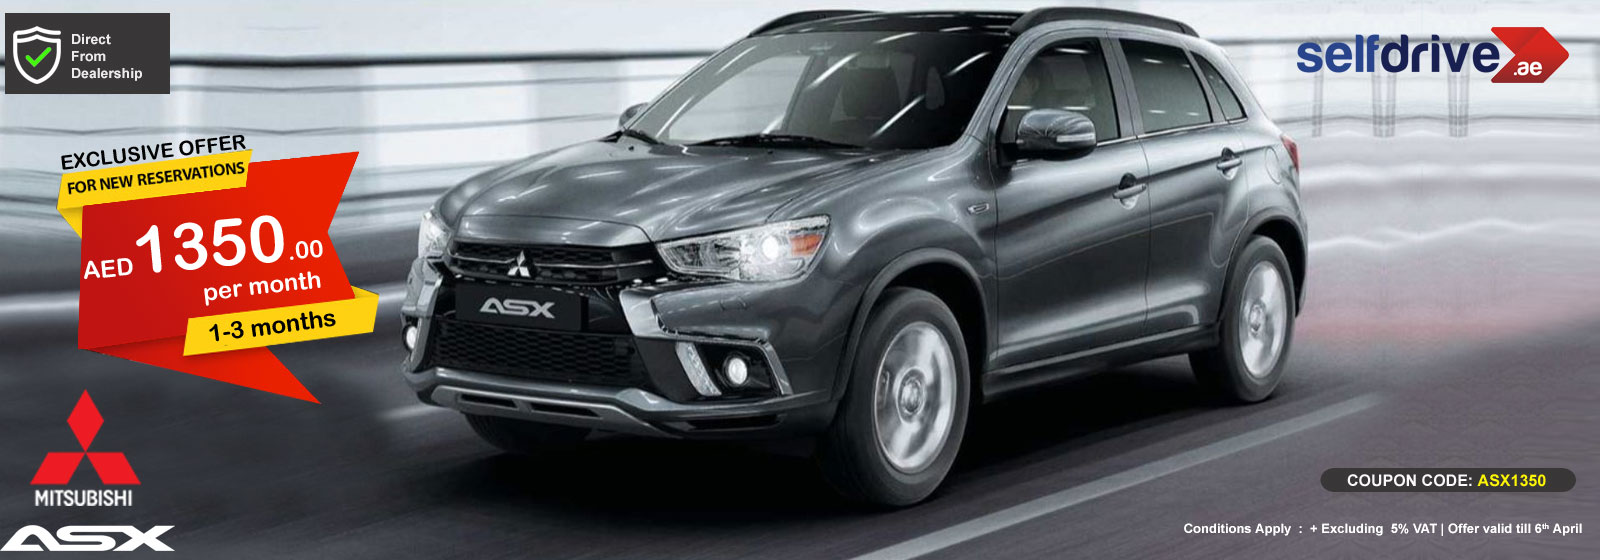 Rent Mitsubishi ASX exclusive offer for 1-3 months